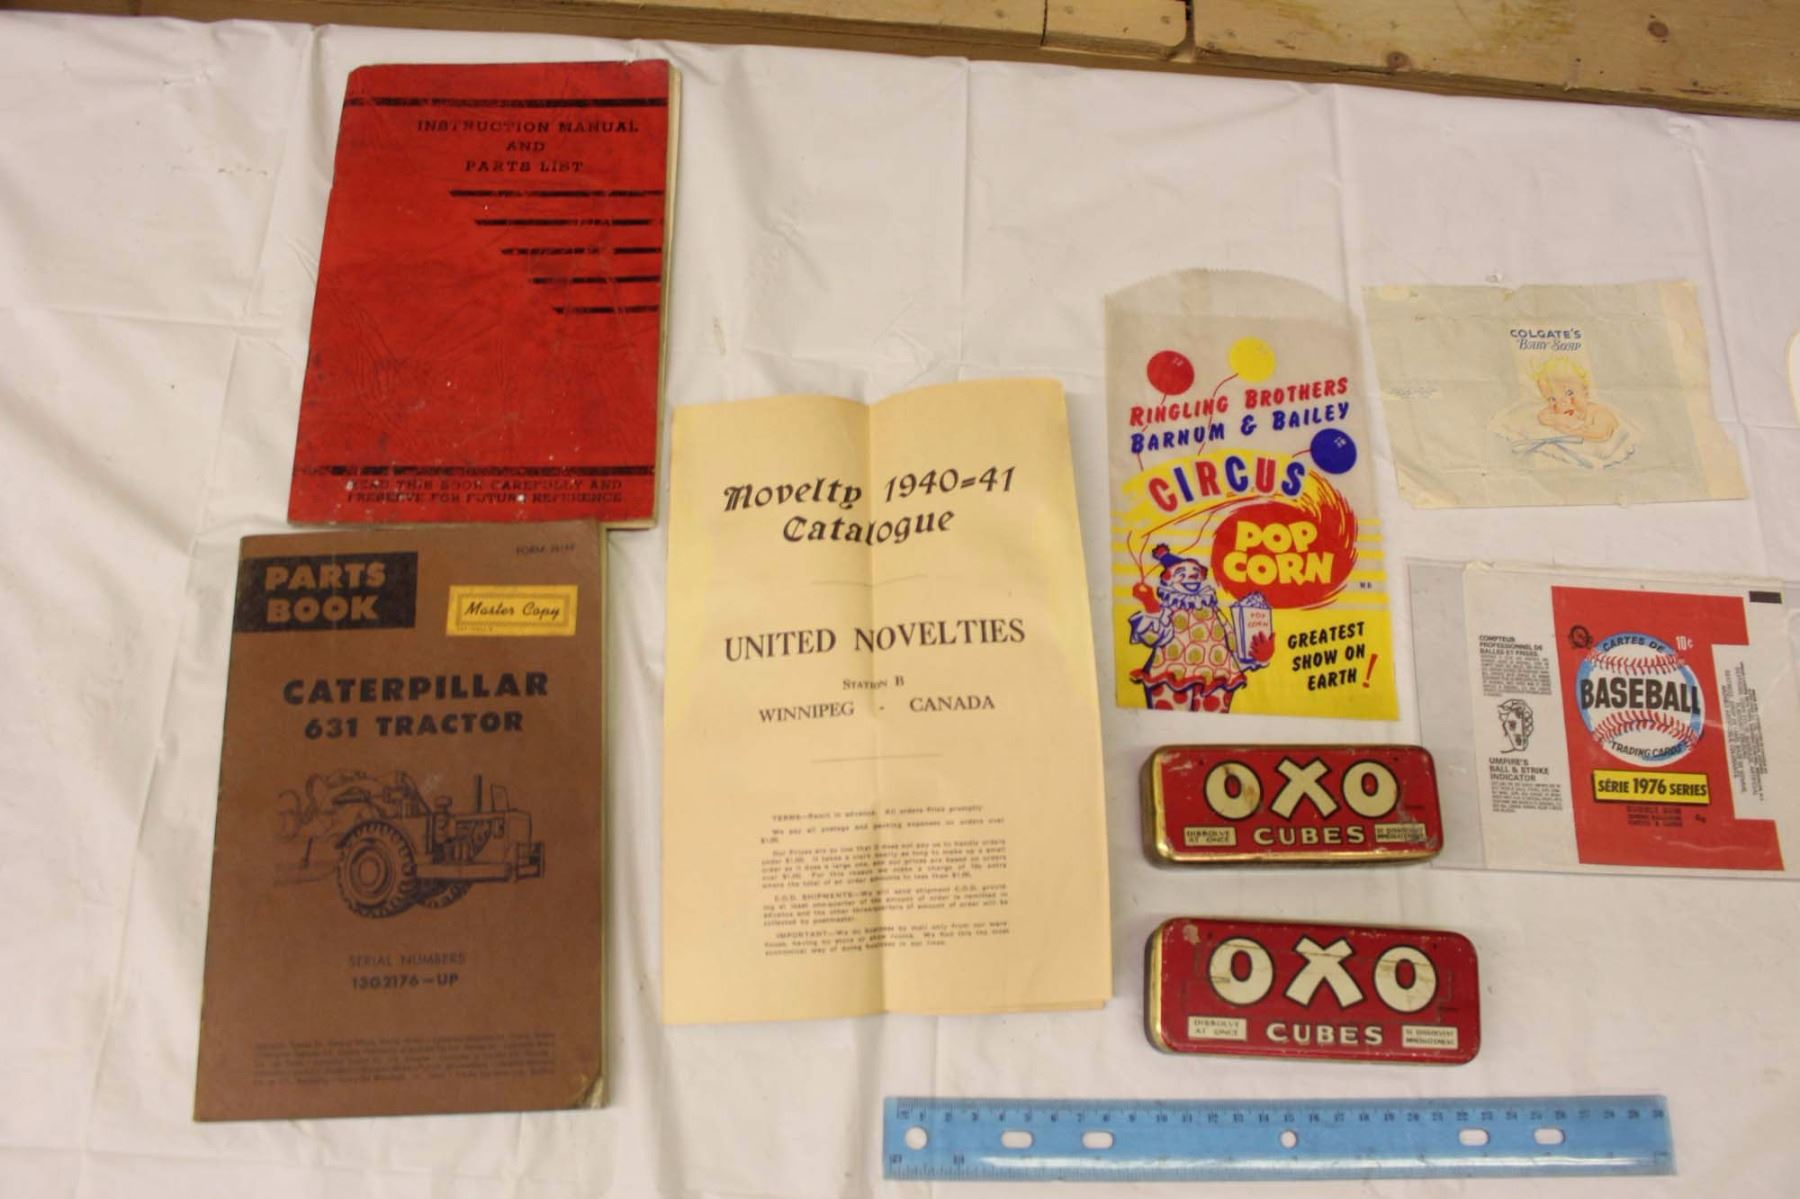 ... Image 2 : Lot Of Vintage Manuals And Misc. (Novelty Catalogue,  Caterpillar Tractor ...